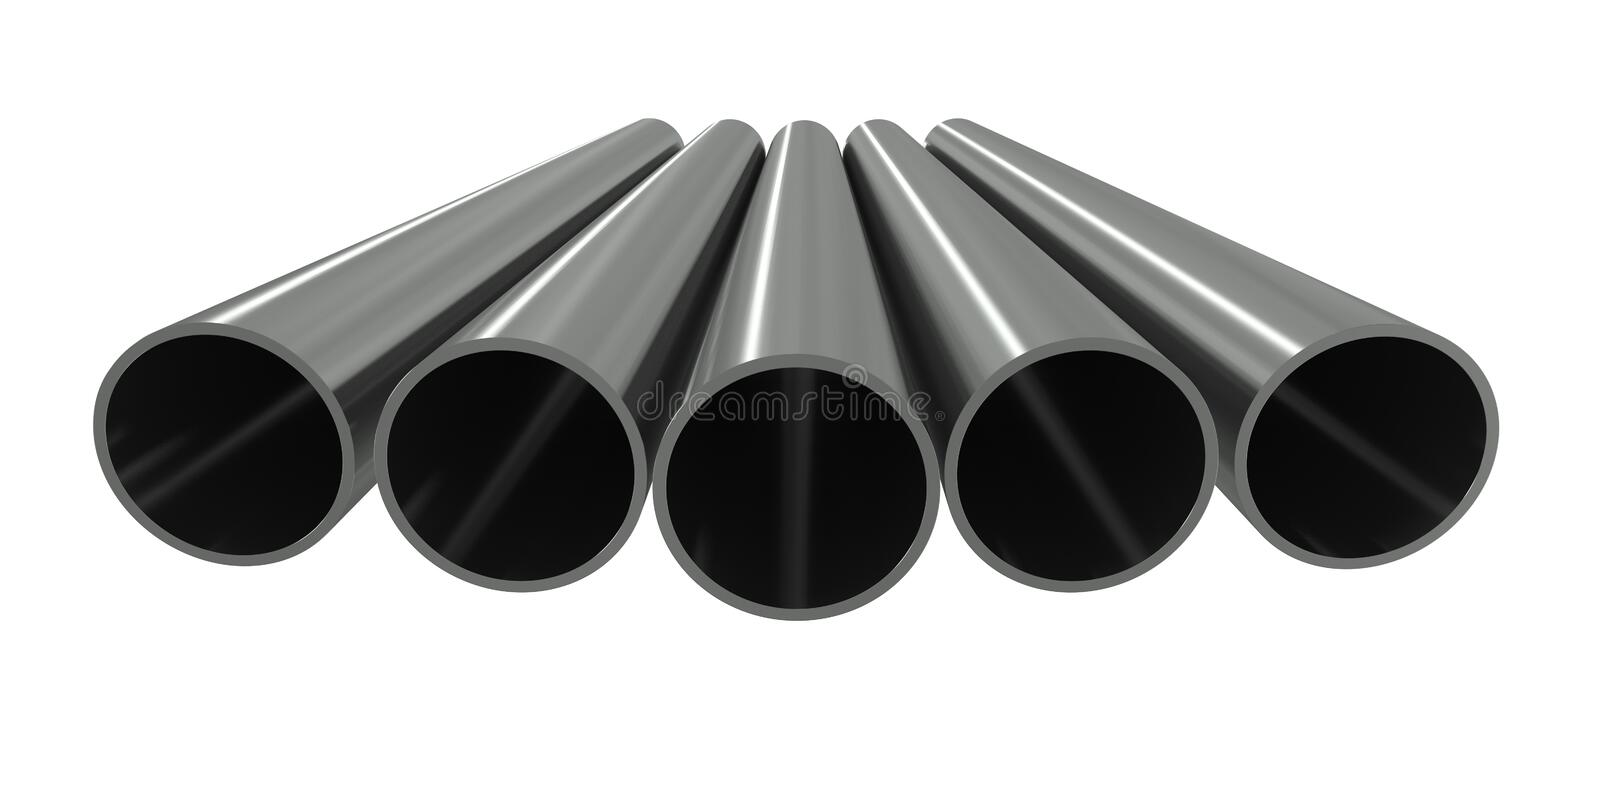 Group metal pipe royalty free illustration